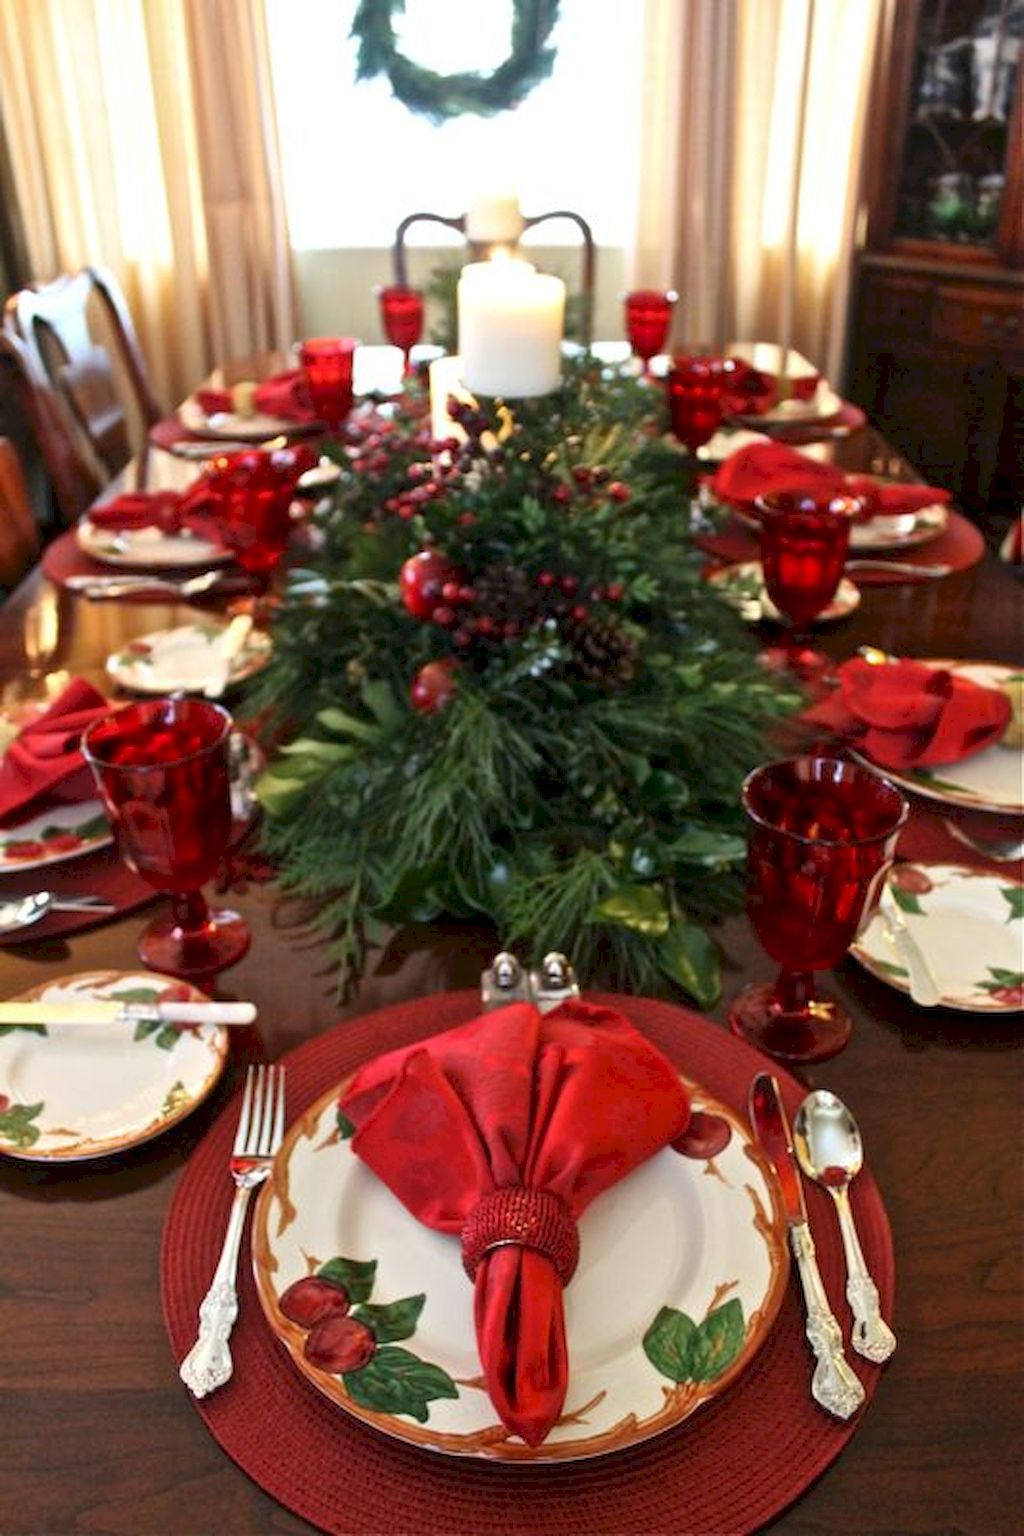 Gorgeous 40 Awesome Christmas Dinner Table Decorations Ideas Https Living Christmas Table Decorations Centerpiece Christmas Table Christmas Table Decorations